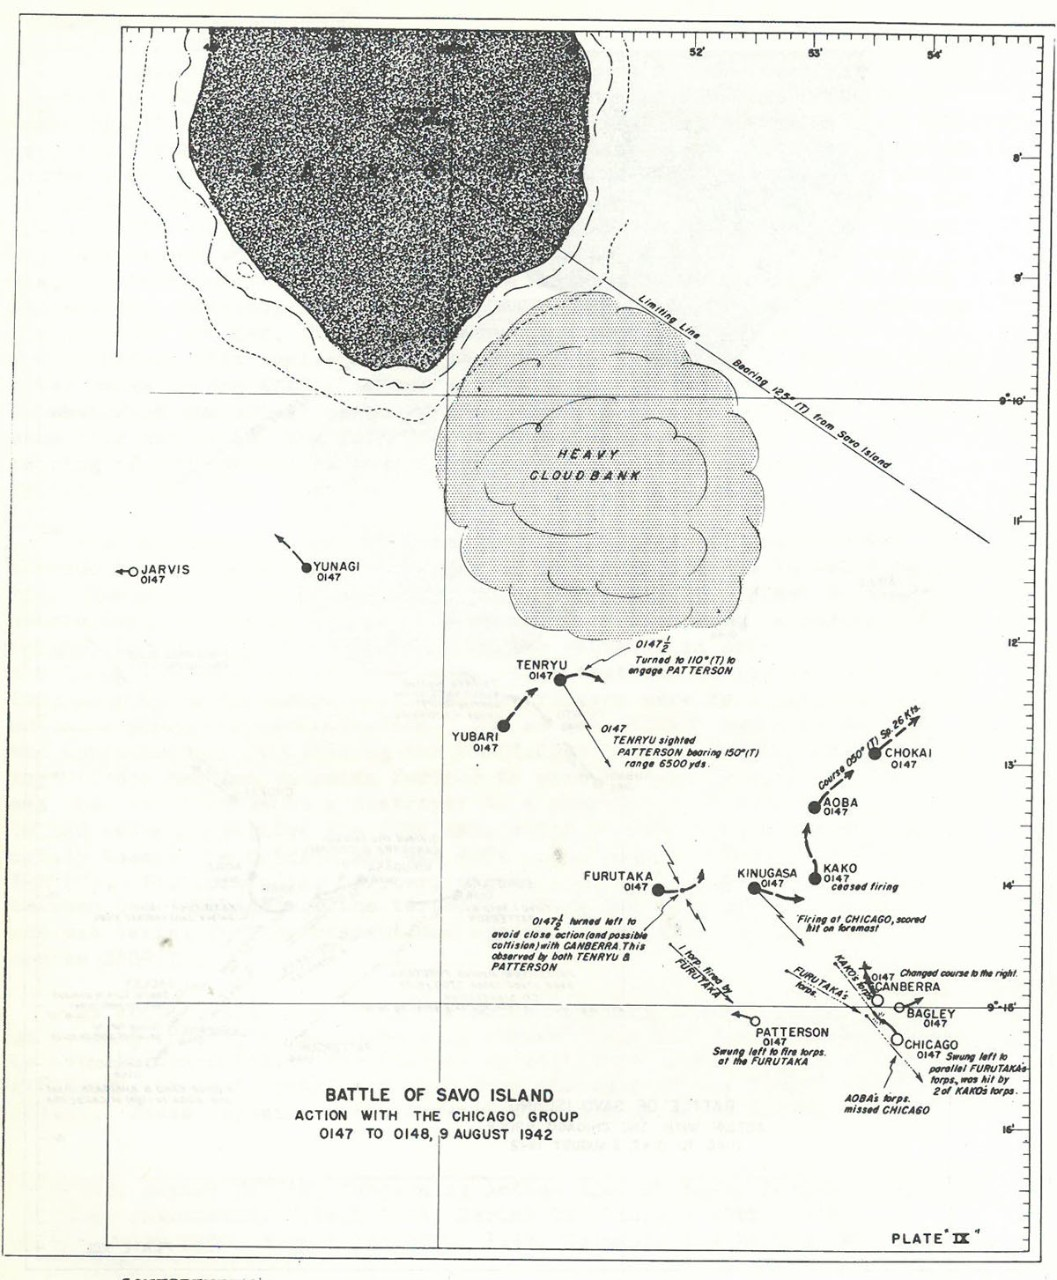 Plate 9: Battle of Savo Island, Action with the CHICAGO Group, 0147 to 0148, 9 August 1942 - chart - The Battle of Savo Island August 9, 1942 Strategical and Tactical Analysis